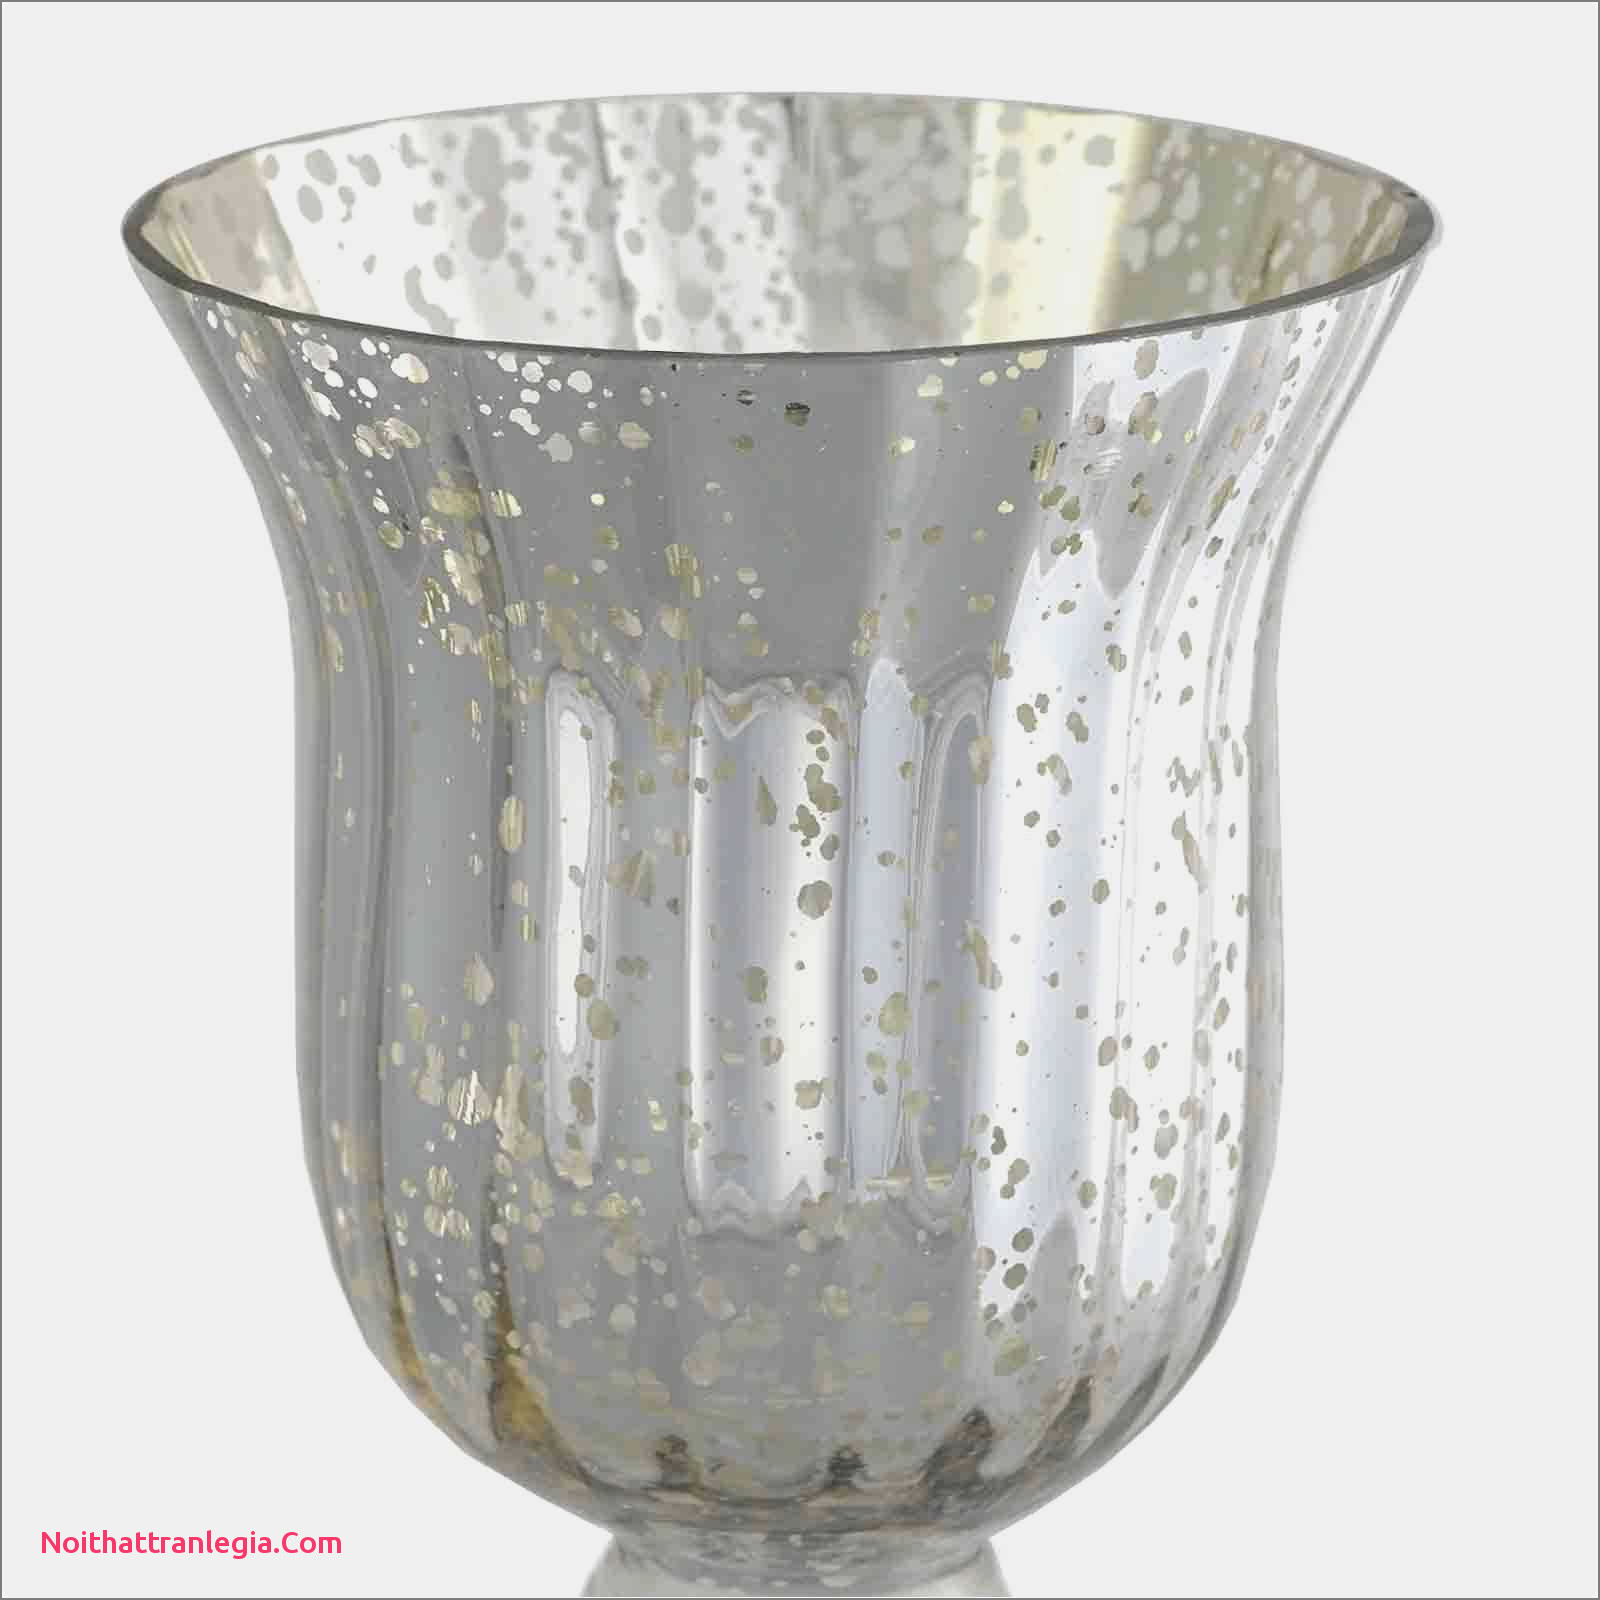 discount mercury glass vases of 20 wedding vases noithattranlegia vases design with wedding guest gift ideas inspirational candles for wedding favors superb pe s5h vases candle vase i